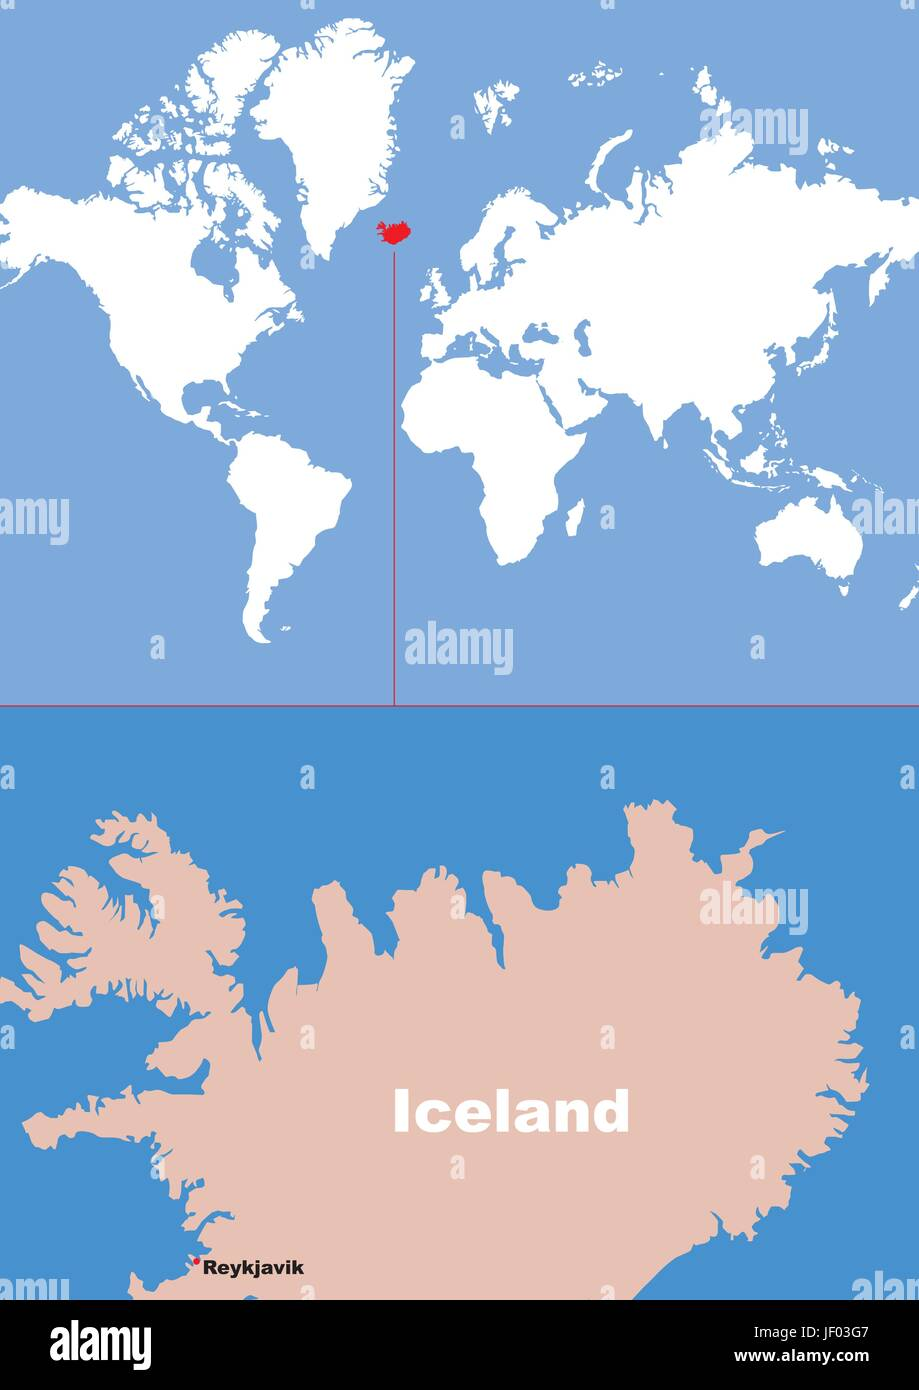 Card iceland atlas map of the world map card iceland card iceland atlas map of the world map card iceland synopsis land gumiabroncs Image collections